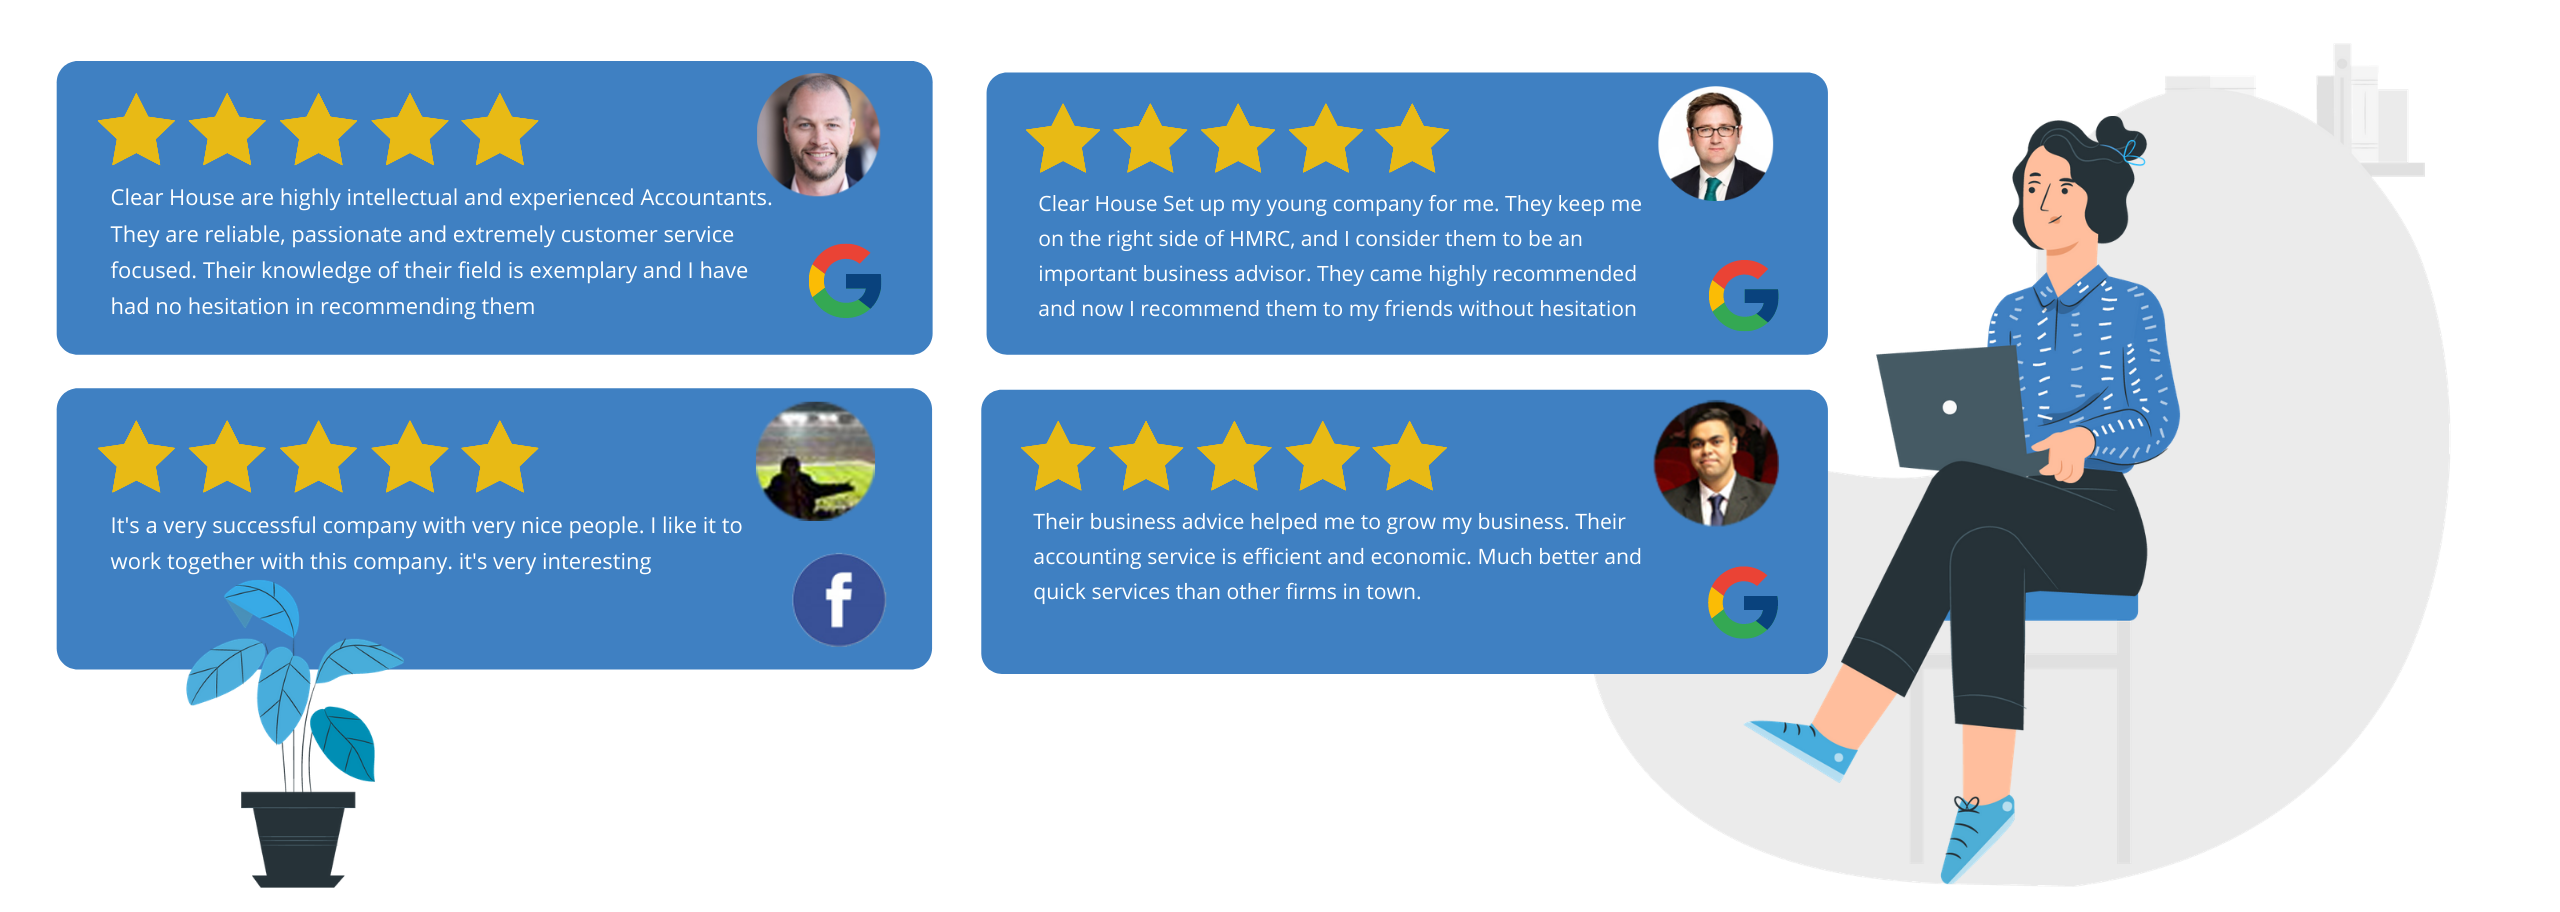 best accounting firm reviews